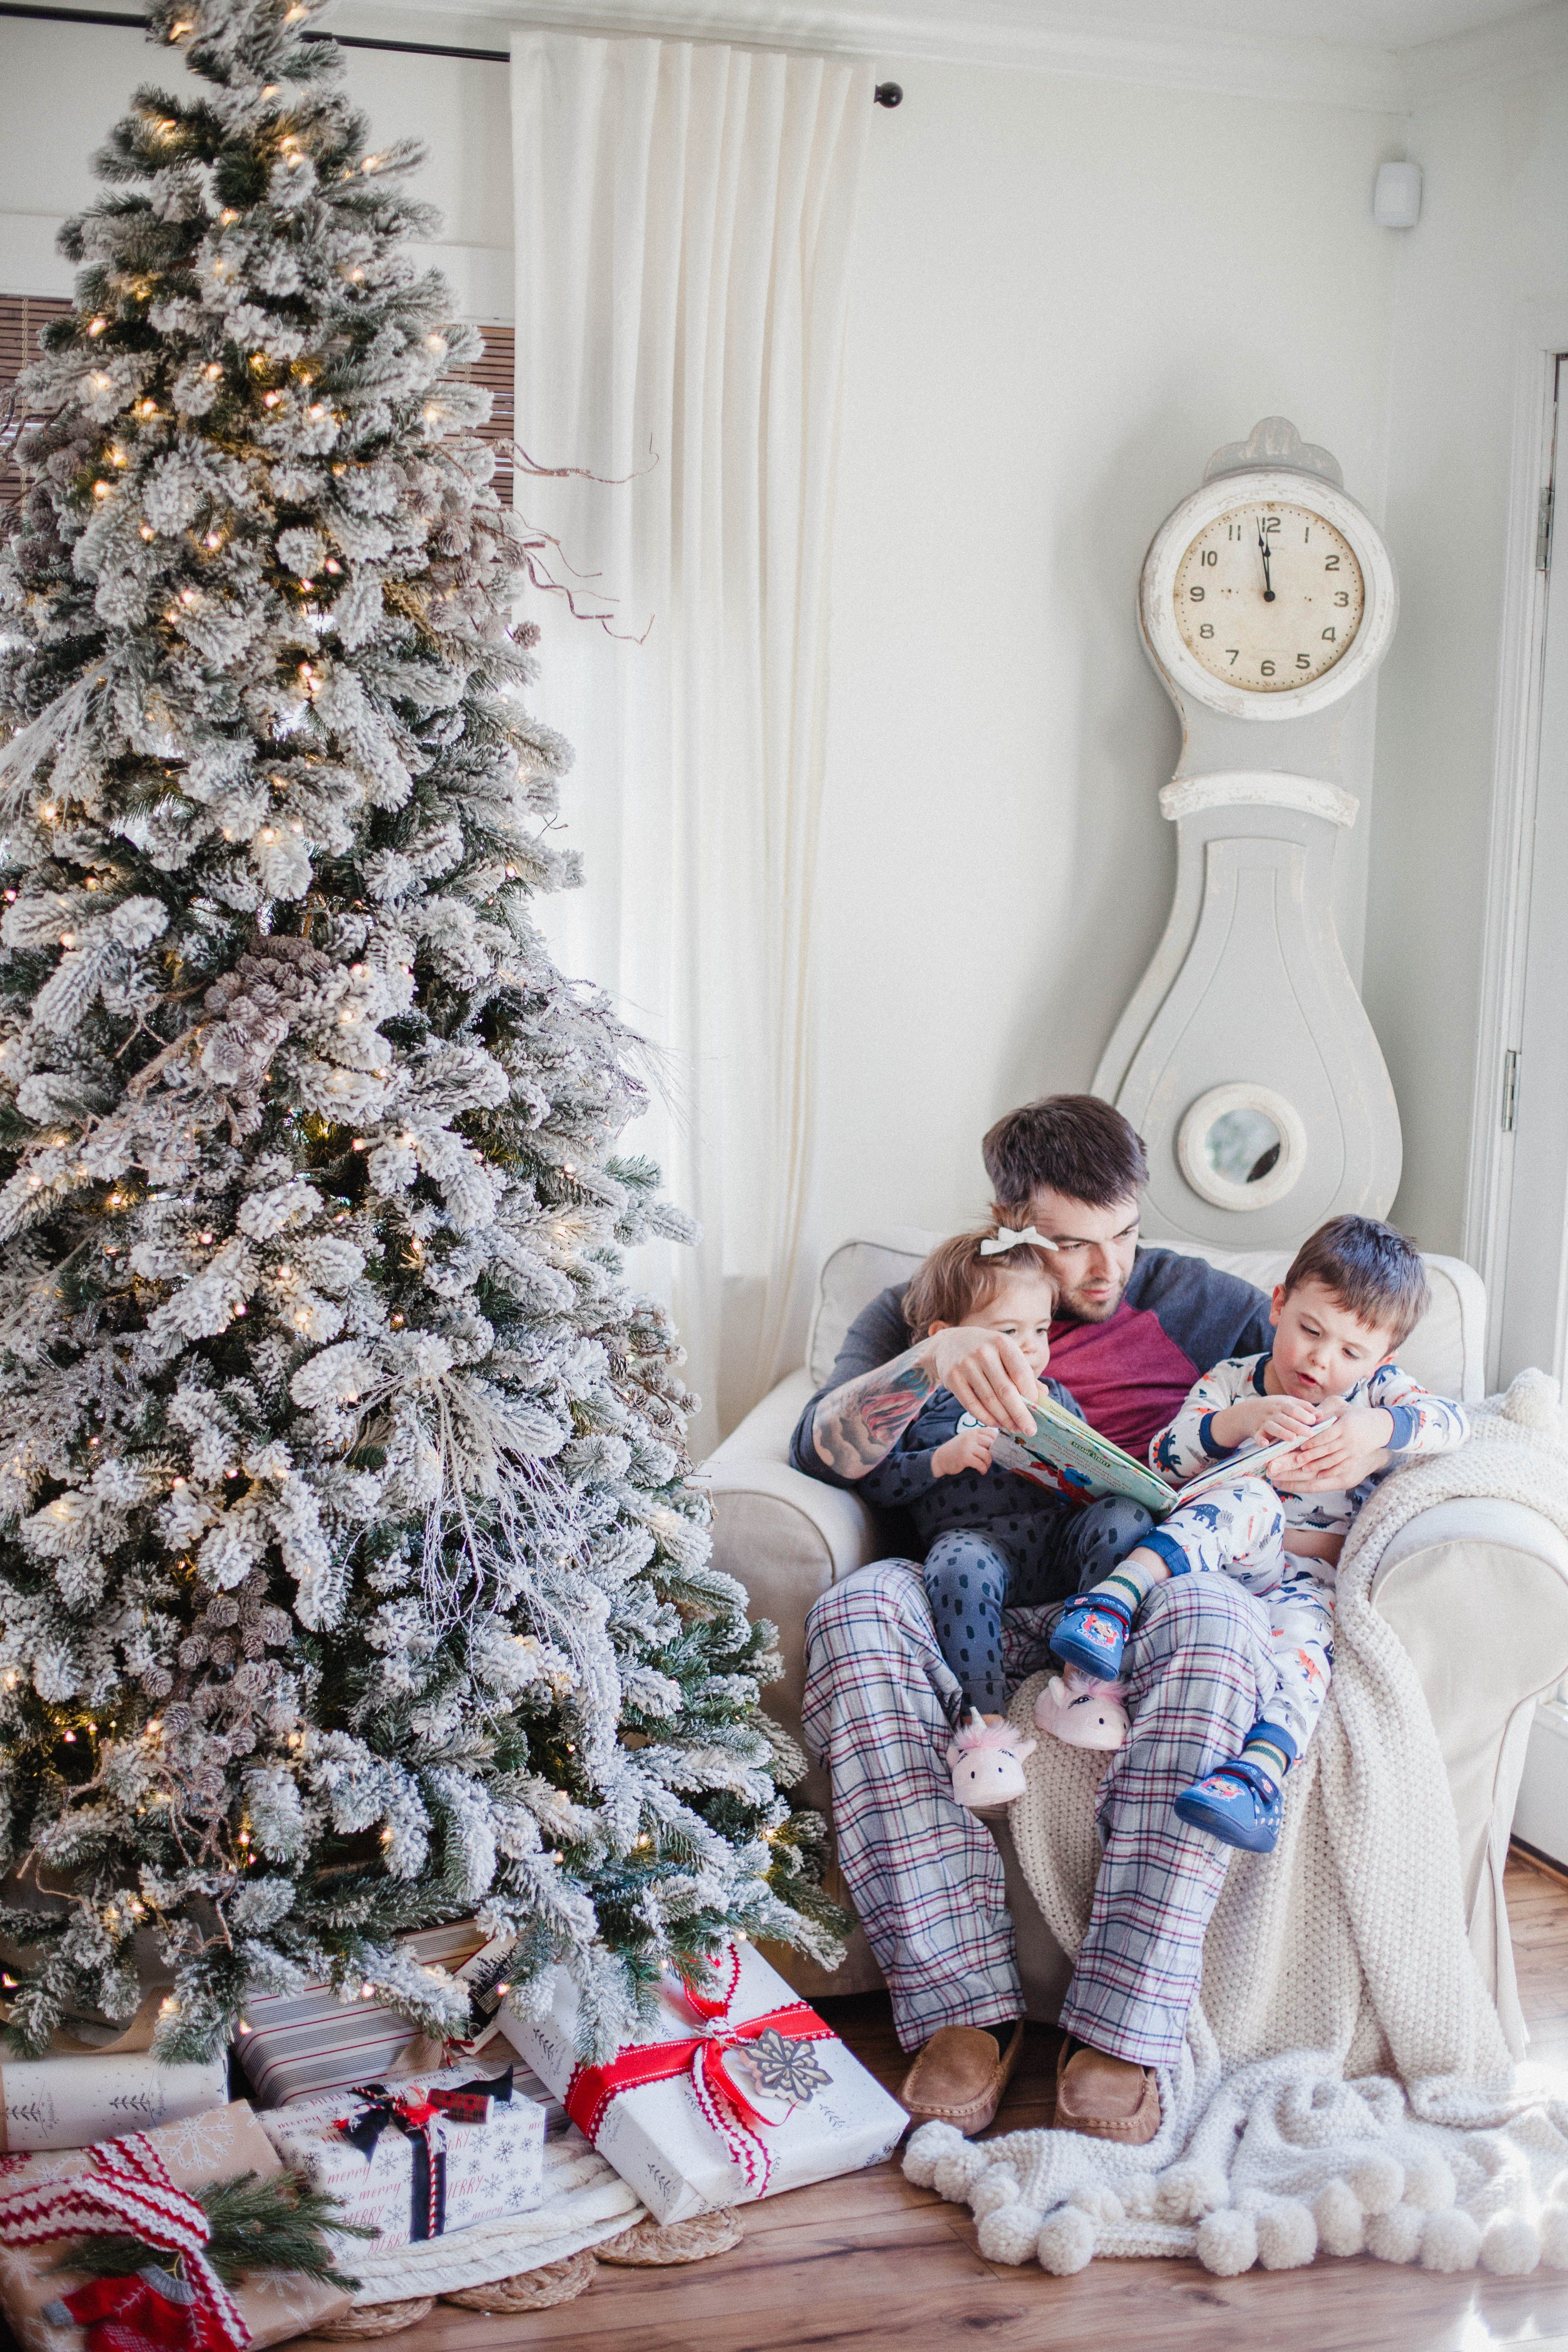 Gifts For The Whole Family With Marks Spencer Lauren Mcbride Christmas Pjs Family The Best Of Christmas Marks And Spencer